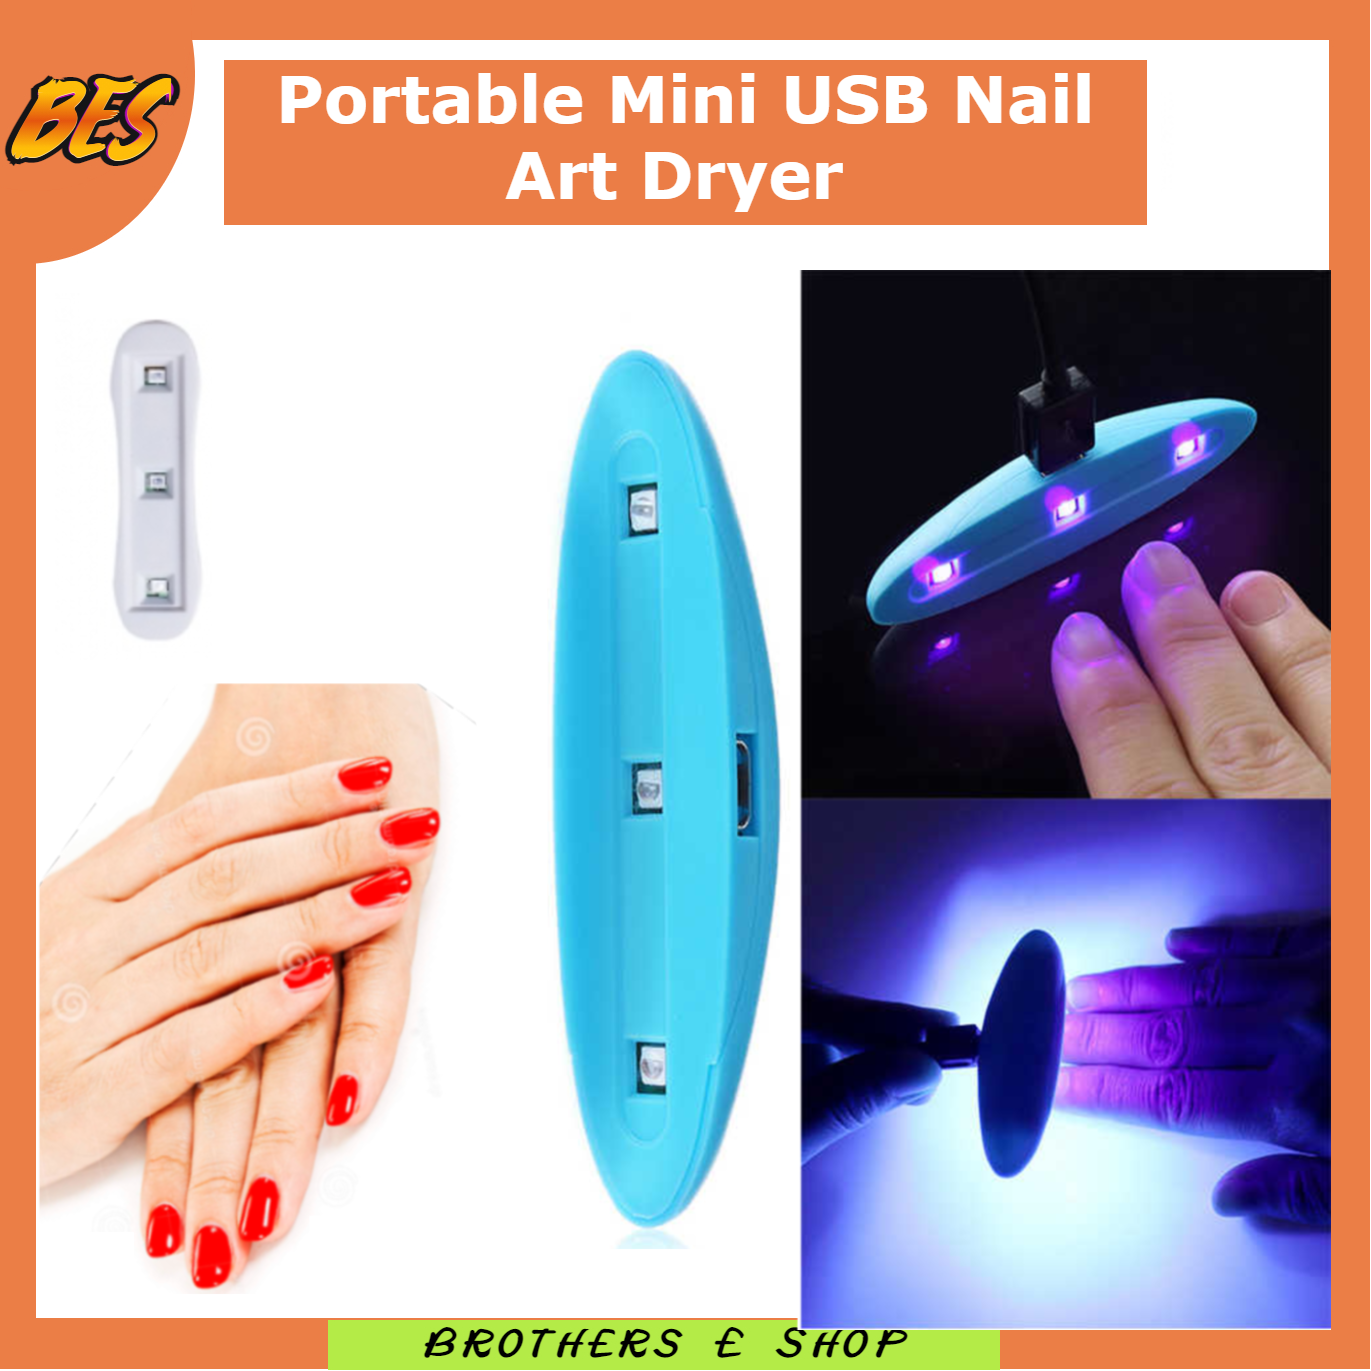 GIRLS Accessories ; UV LED Nail Dryer Lamp Light Portable for Gel Based Polishes for GIRLS Brothers e shop